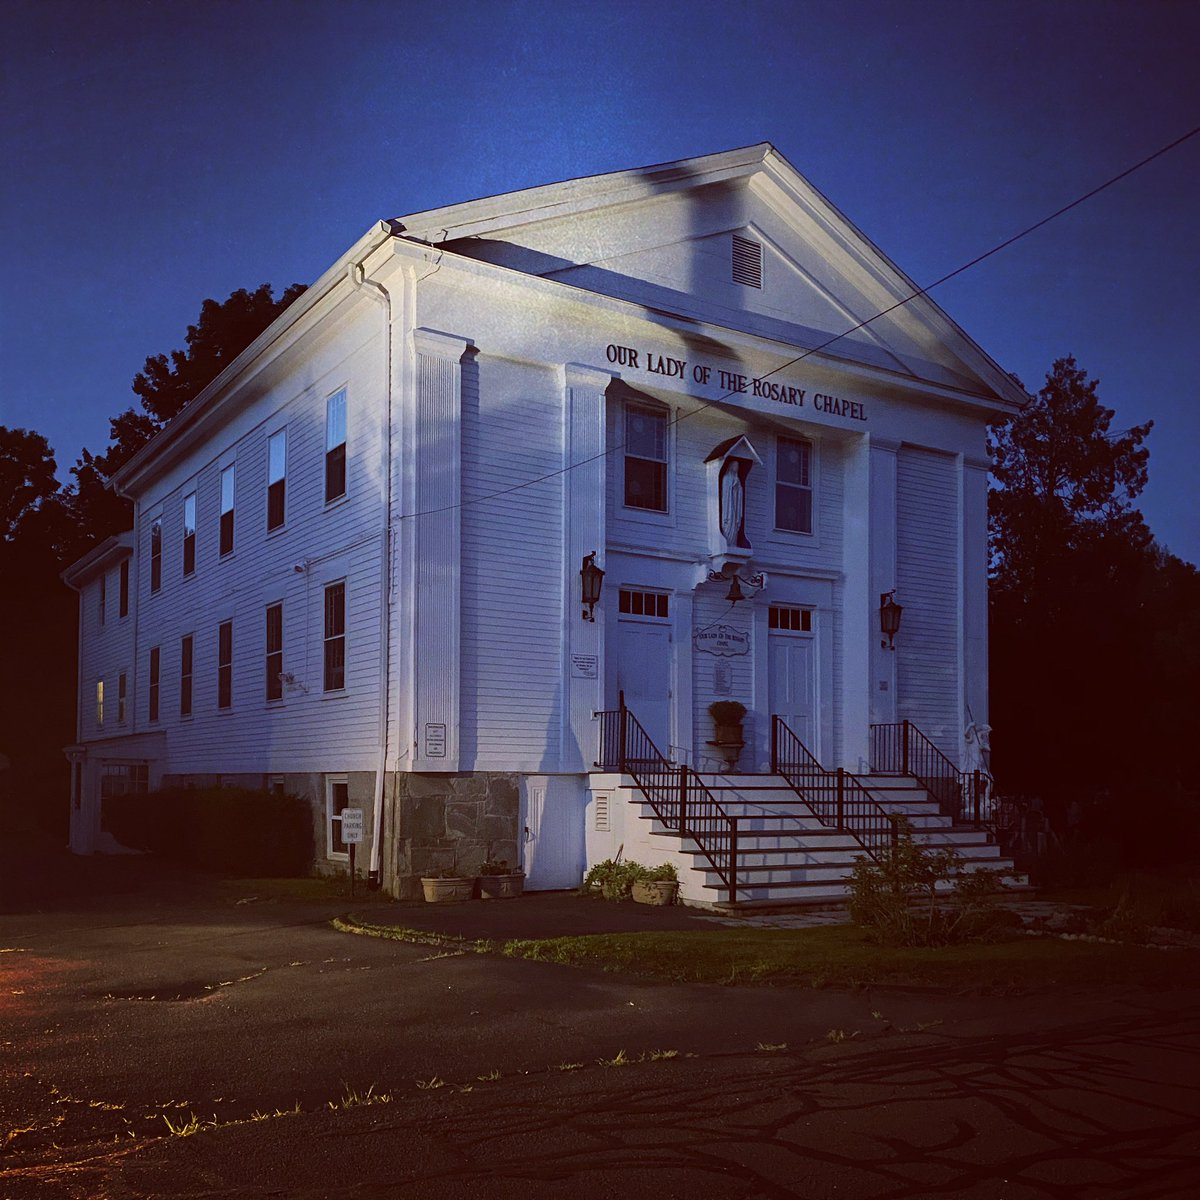 The Our Lady Of The Rosary Chapel  where thousands of exorcisms have been performed and many of which assisted by Ed and Lorraine Warren.#edandlorrainewarren #nespr #theconjuring #paranormal #supernatural #haunted #exorcism #horror #horrormovies #creepypastapic.twitter.com/g8haN7pVlr